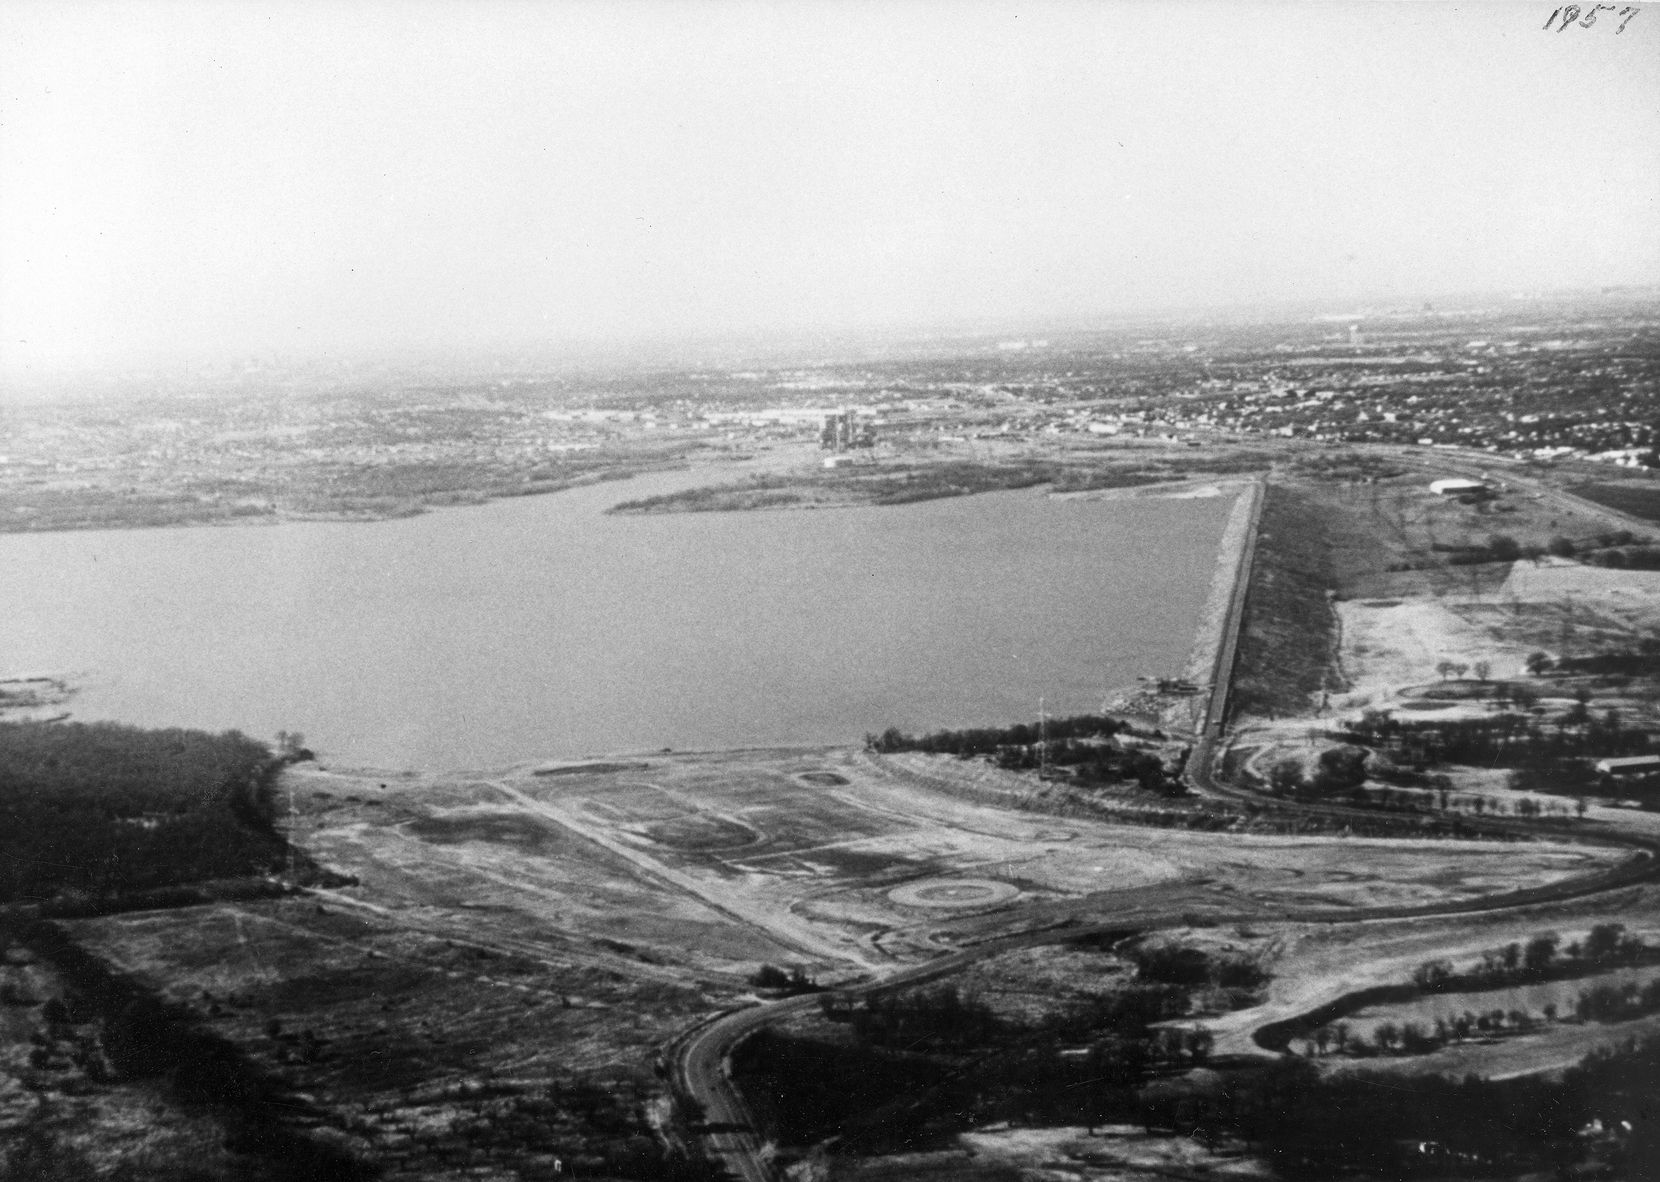 This is a 1957 aerial view of the newly filled Lake Arlington and the Lake Arlington dam. It's believed that the lake covers the area where the 1841 Battle of Village Creek took place.